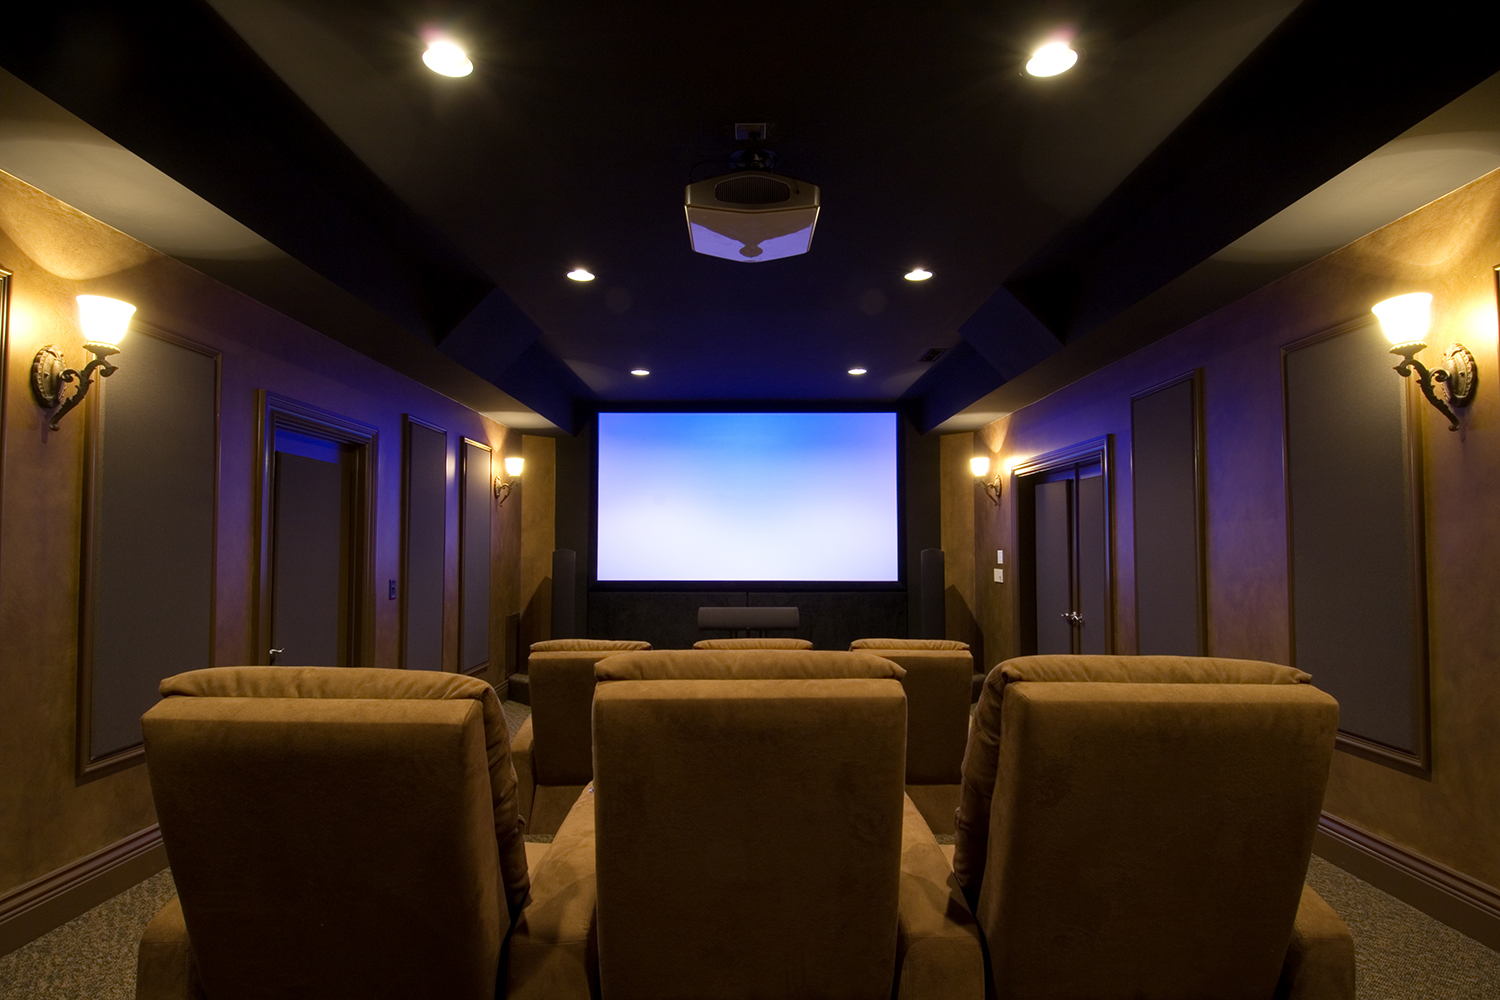 custom-basement-theater-installation-chicagoland.jpg